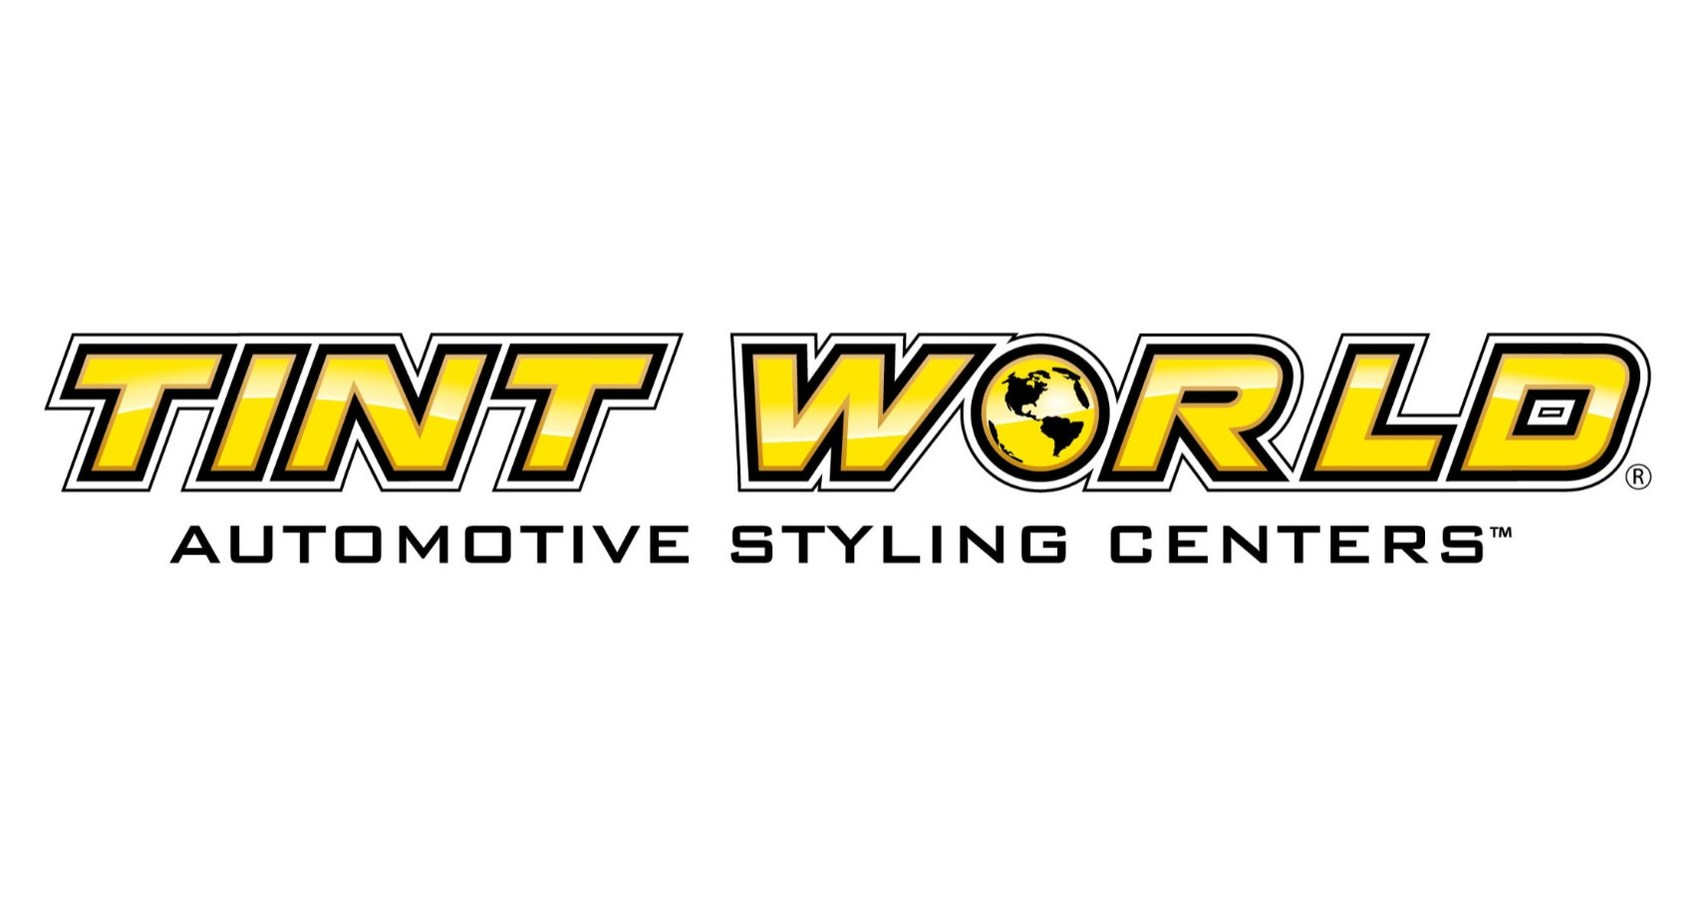 Tint World® named top franchise opportunity for veterans